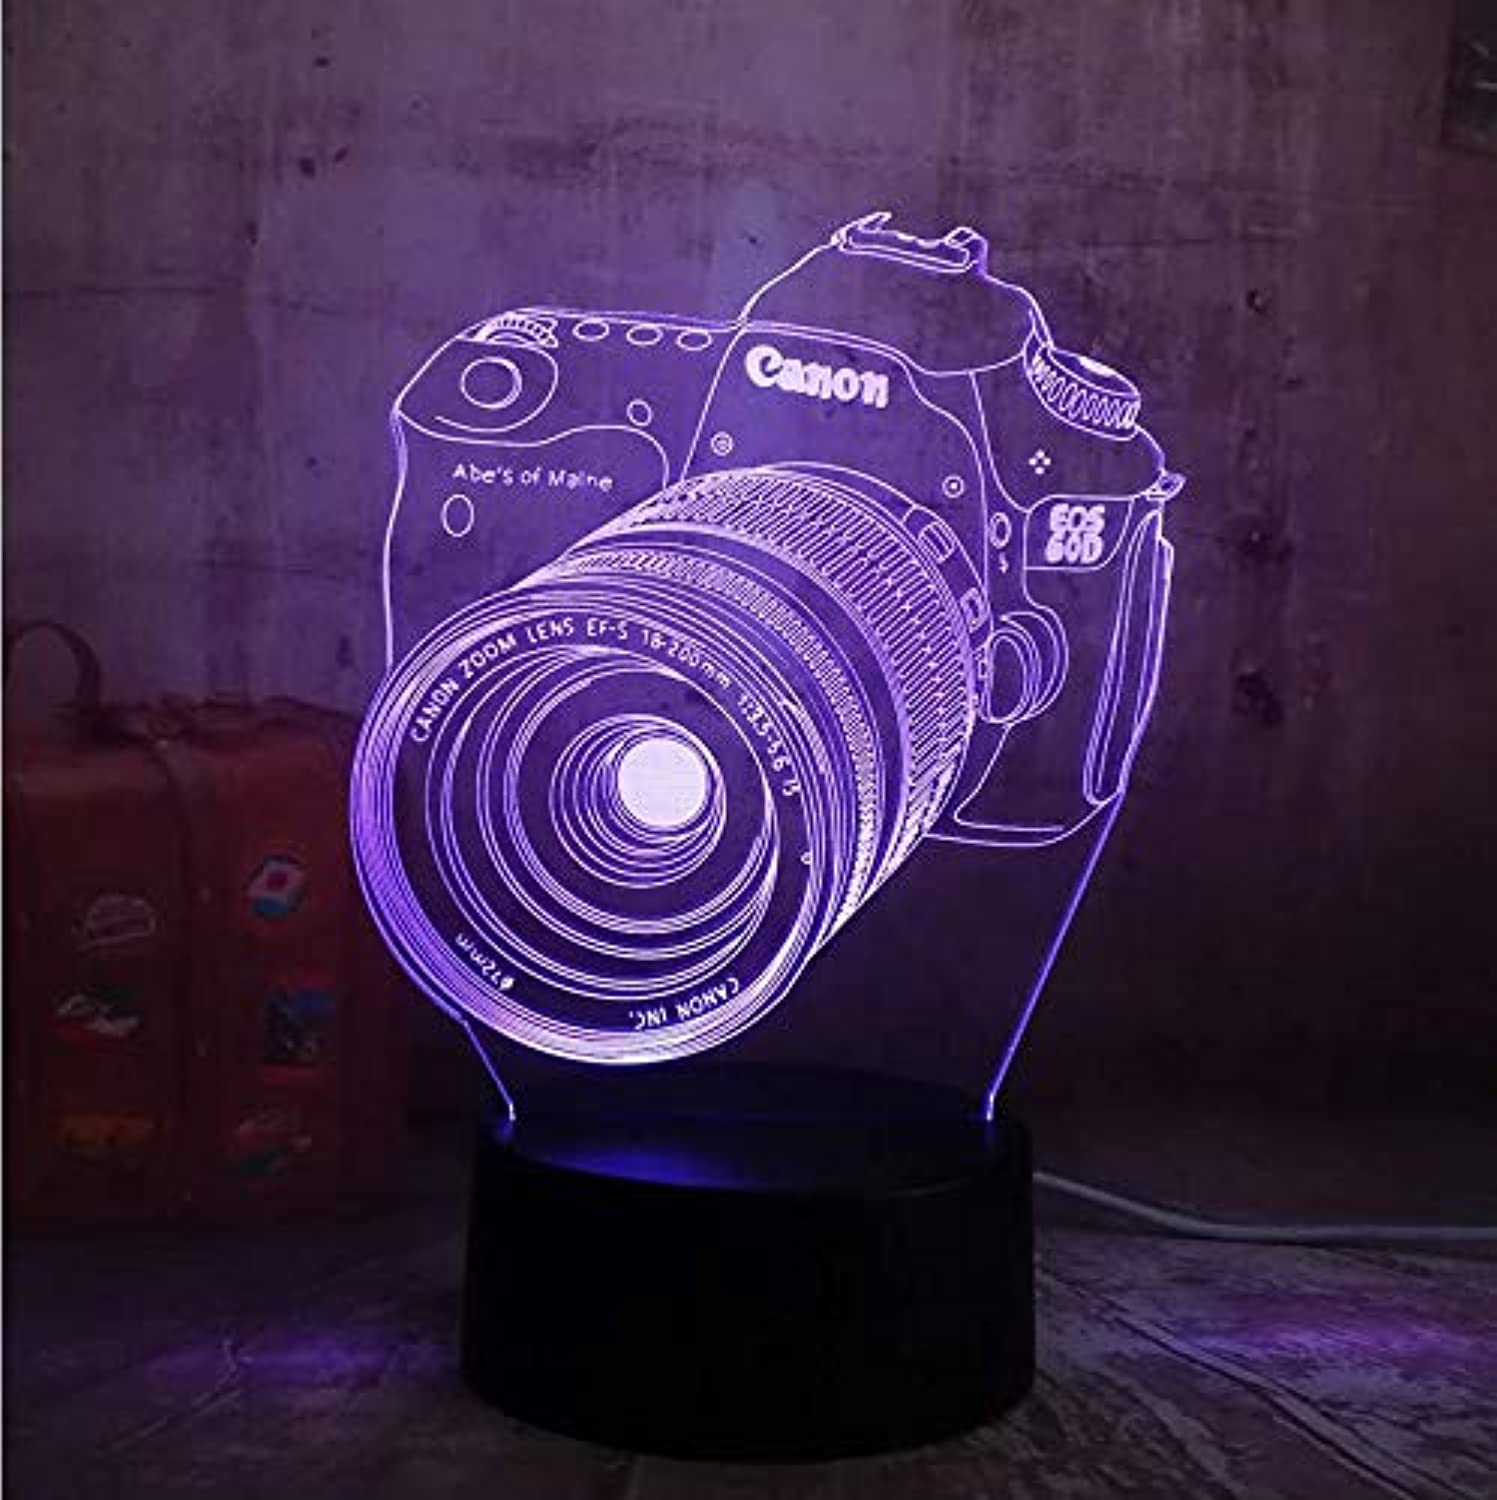 Hnfsliuhao Lamps Cool 3D Camera USB Led Lamp Decoration Home Kids Sleep 7 color Change Night Light Illusion Bedroom Table Desk Lamp Gift